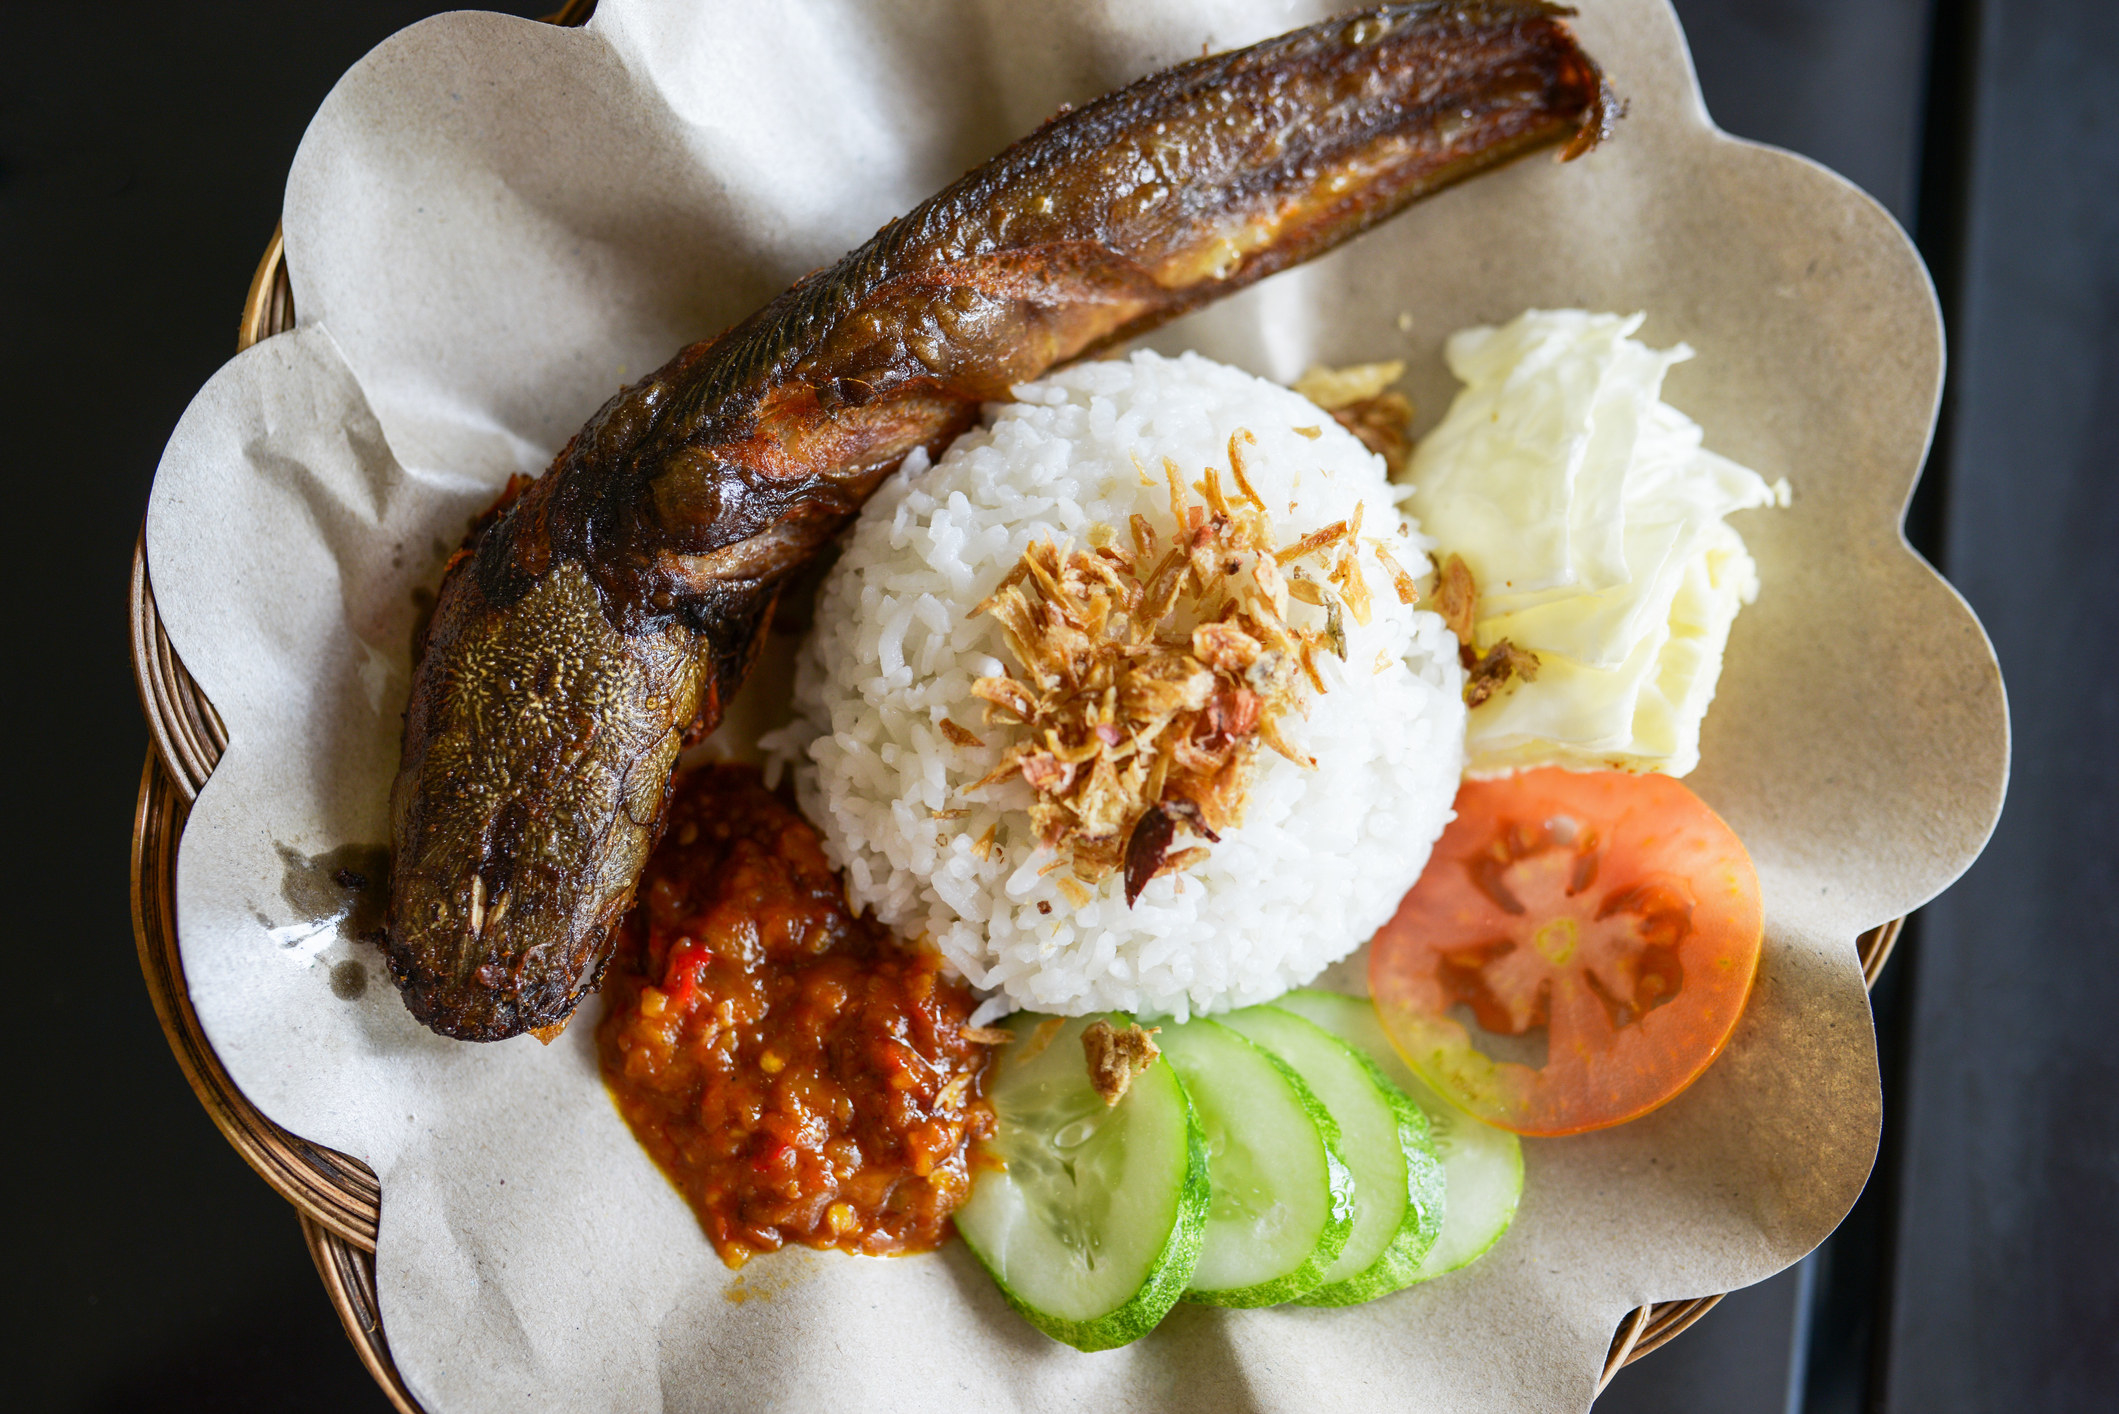 A whole fried fish sits on a plate with a mound of rice, veggies, and a spicy-looking sauce